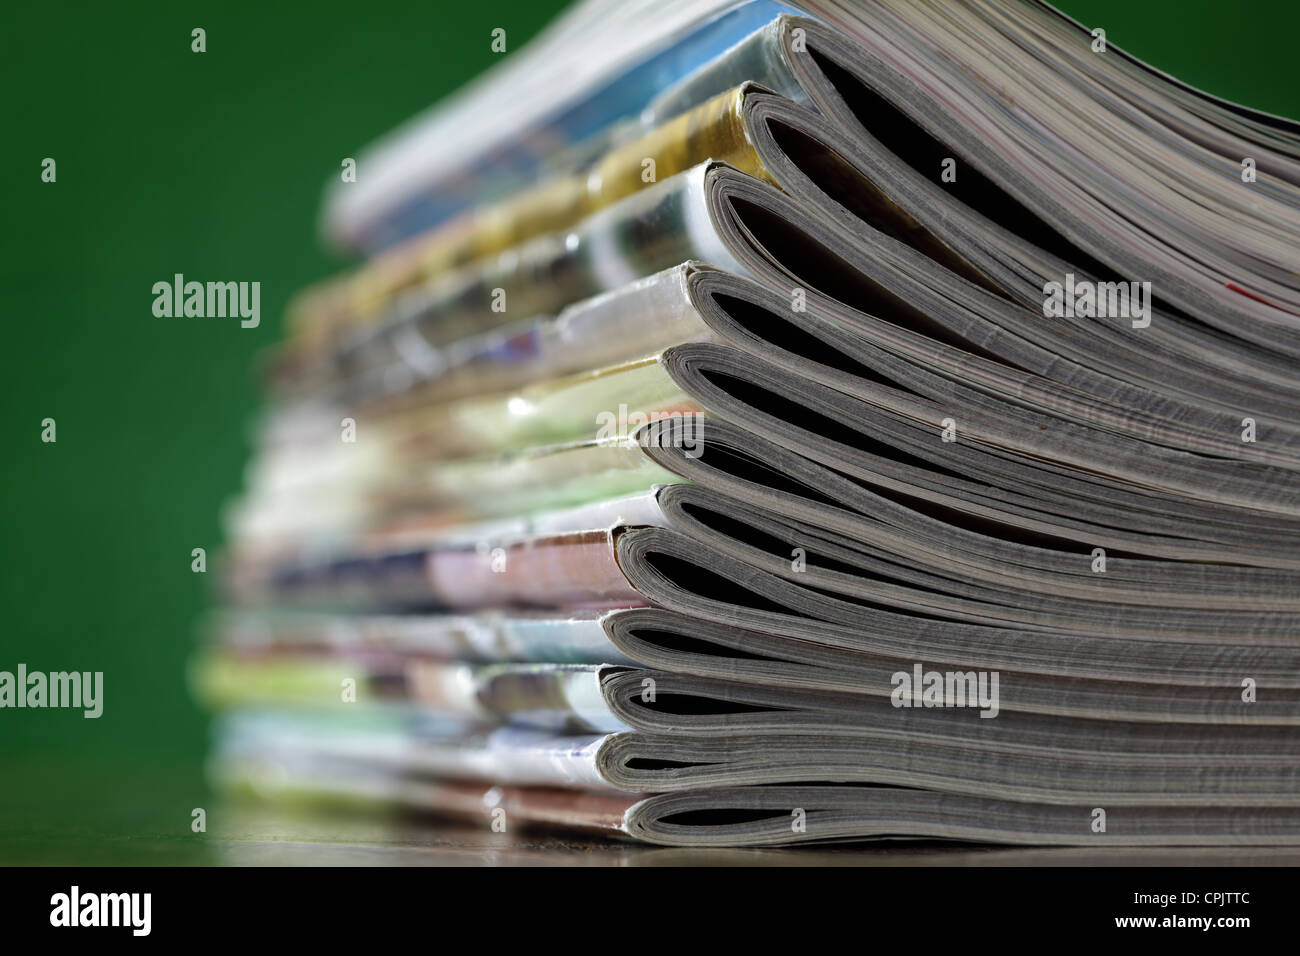 Magazines - Stock Image